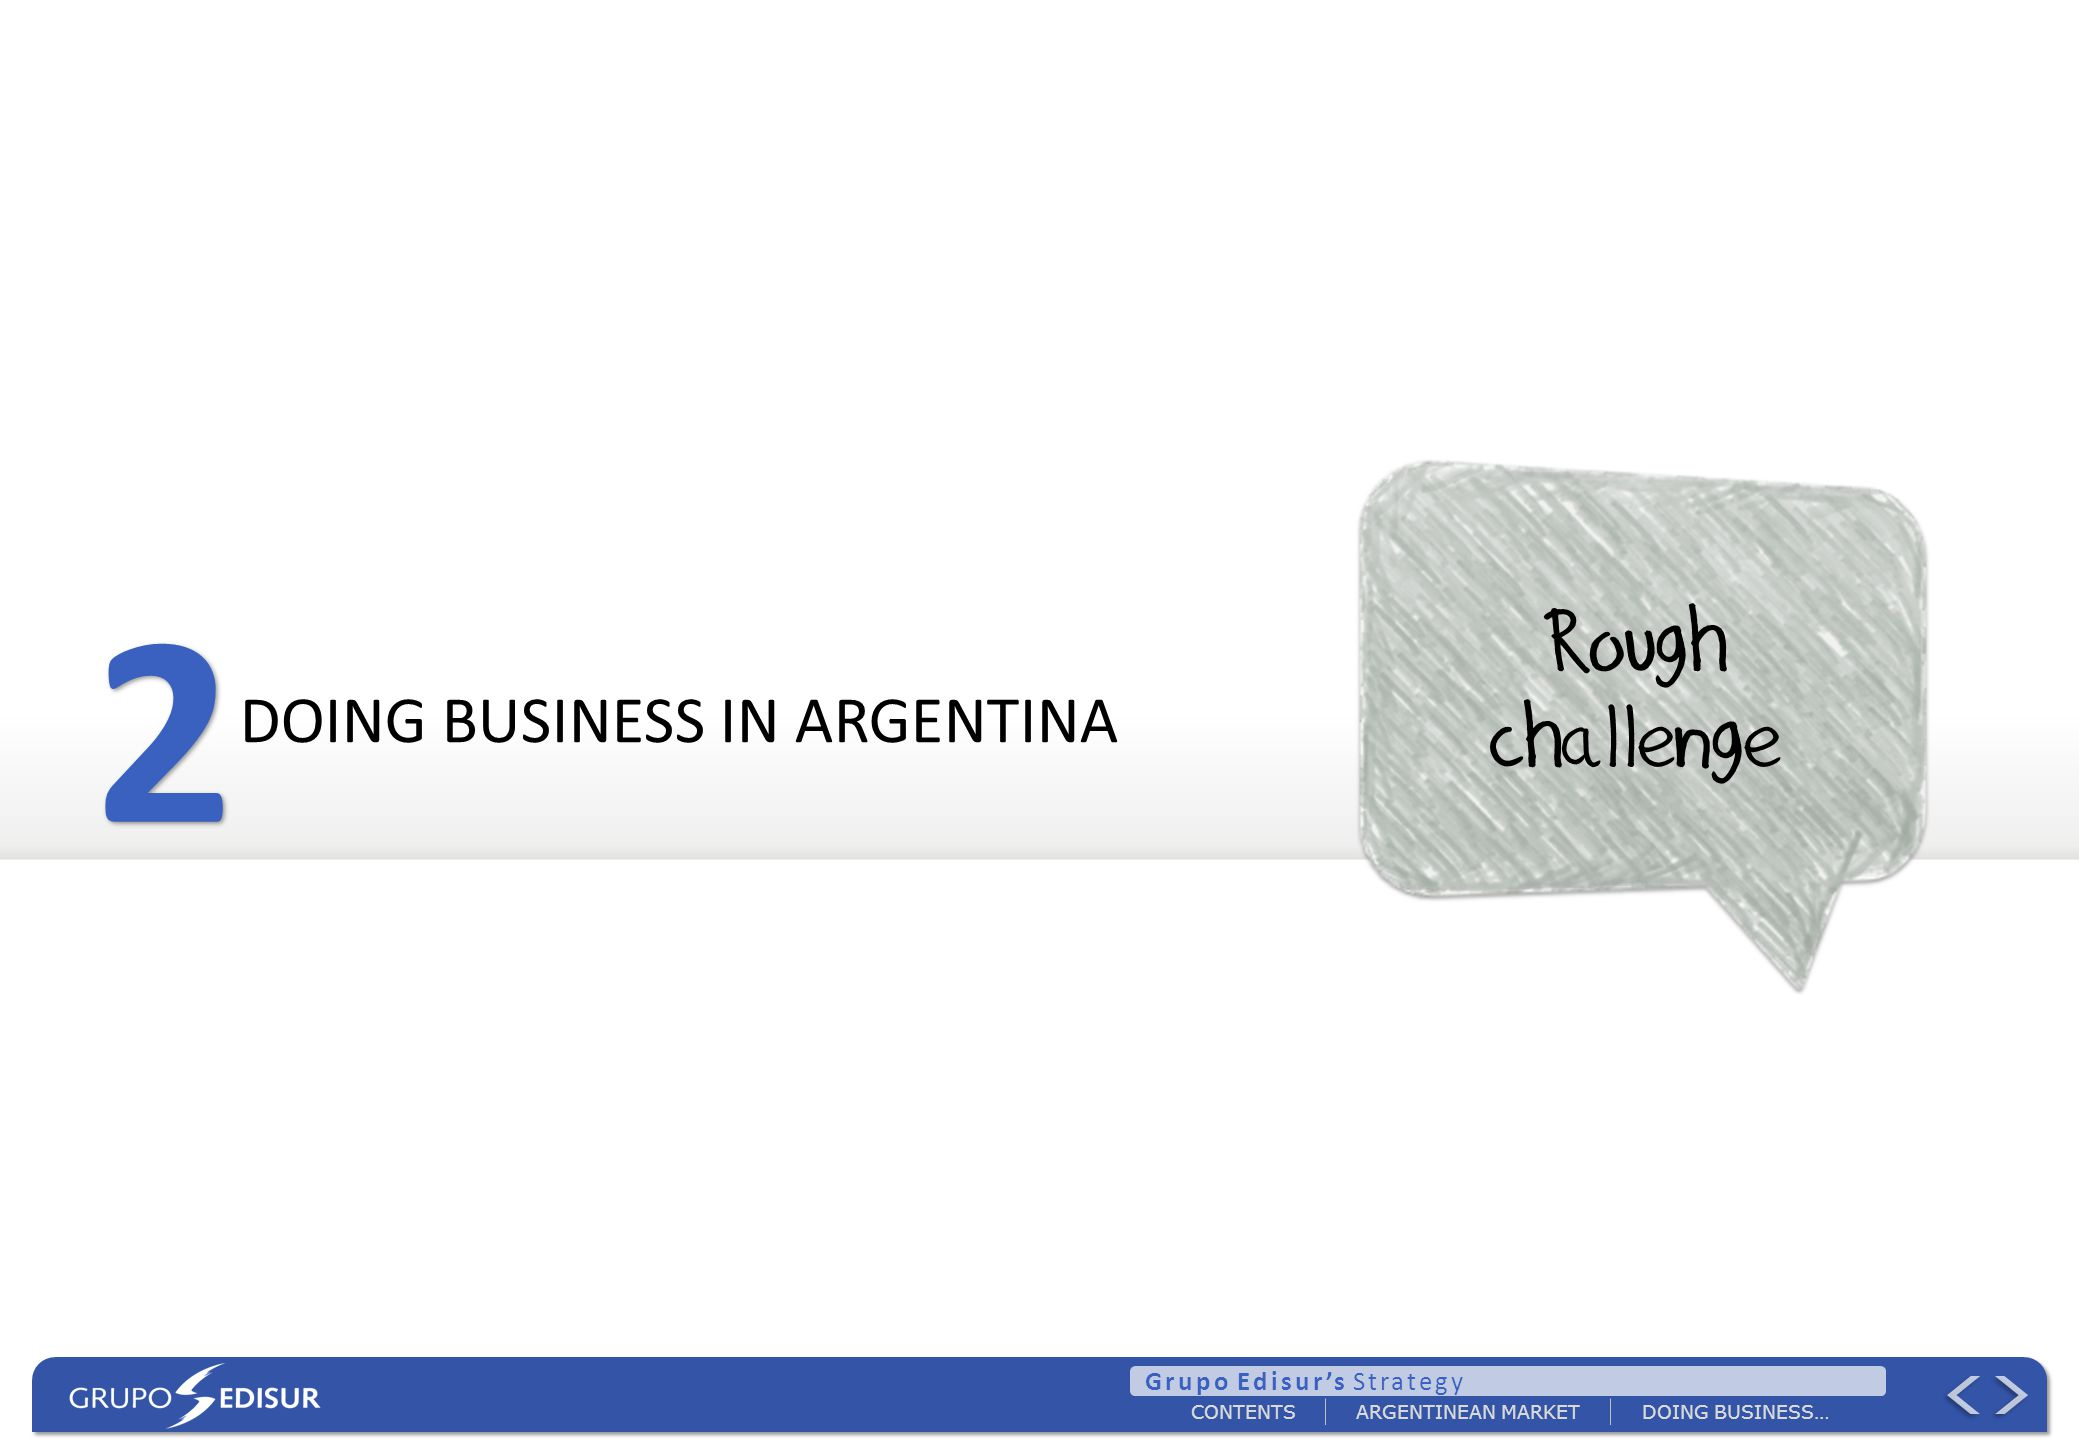 ARGENTINEAN MARKETDOING BUSINESS… Grupo Edisurs Strategy CONTENTS DOING BUSINESS IN ARGENTINA 2 2 Rough challenge